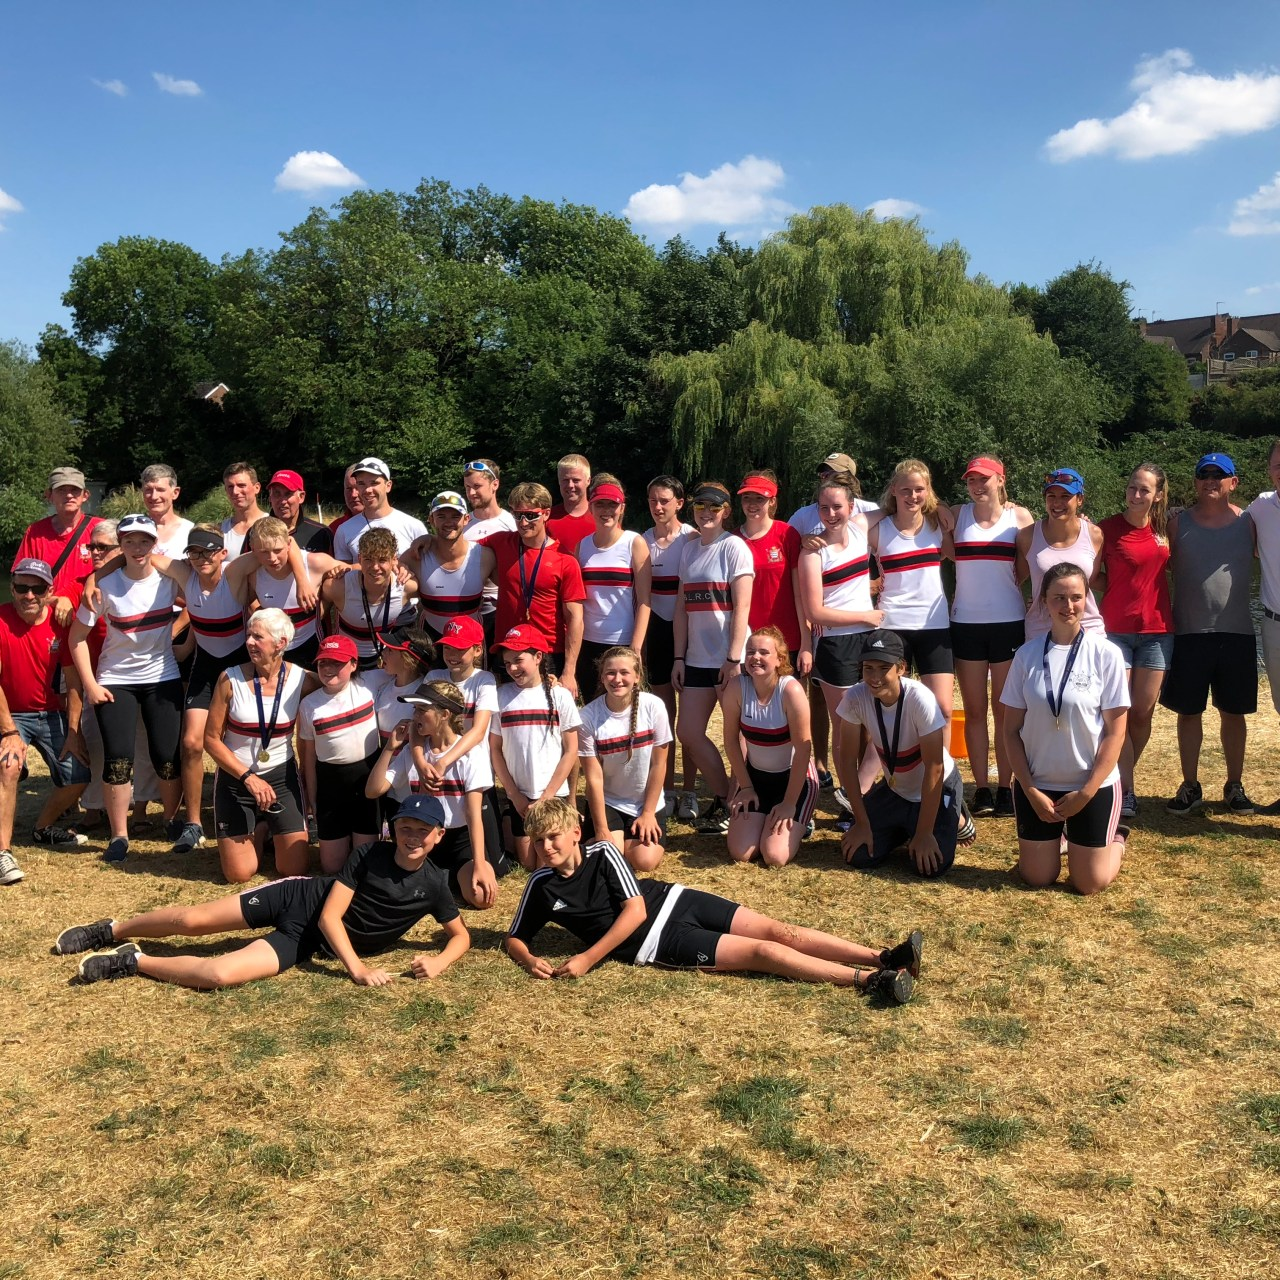 https://i1.wp.com/burtonleanderrowingclub.co.uk/wp-content/uploads/2019/01/blrc-regatta-2018.jpg?resize=1280%2C1280&ssl=1